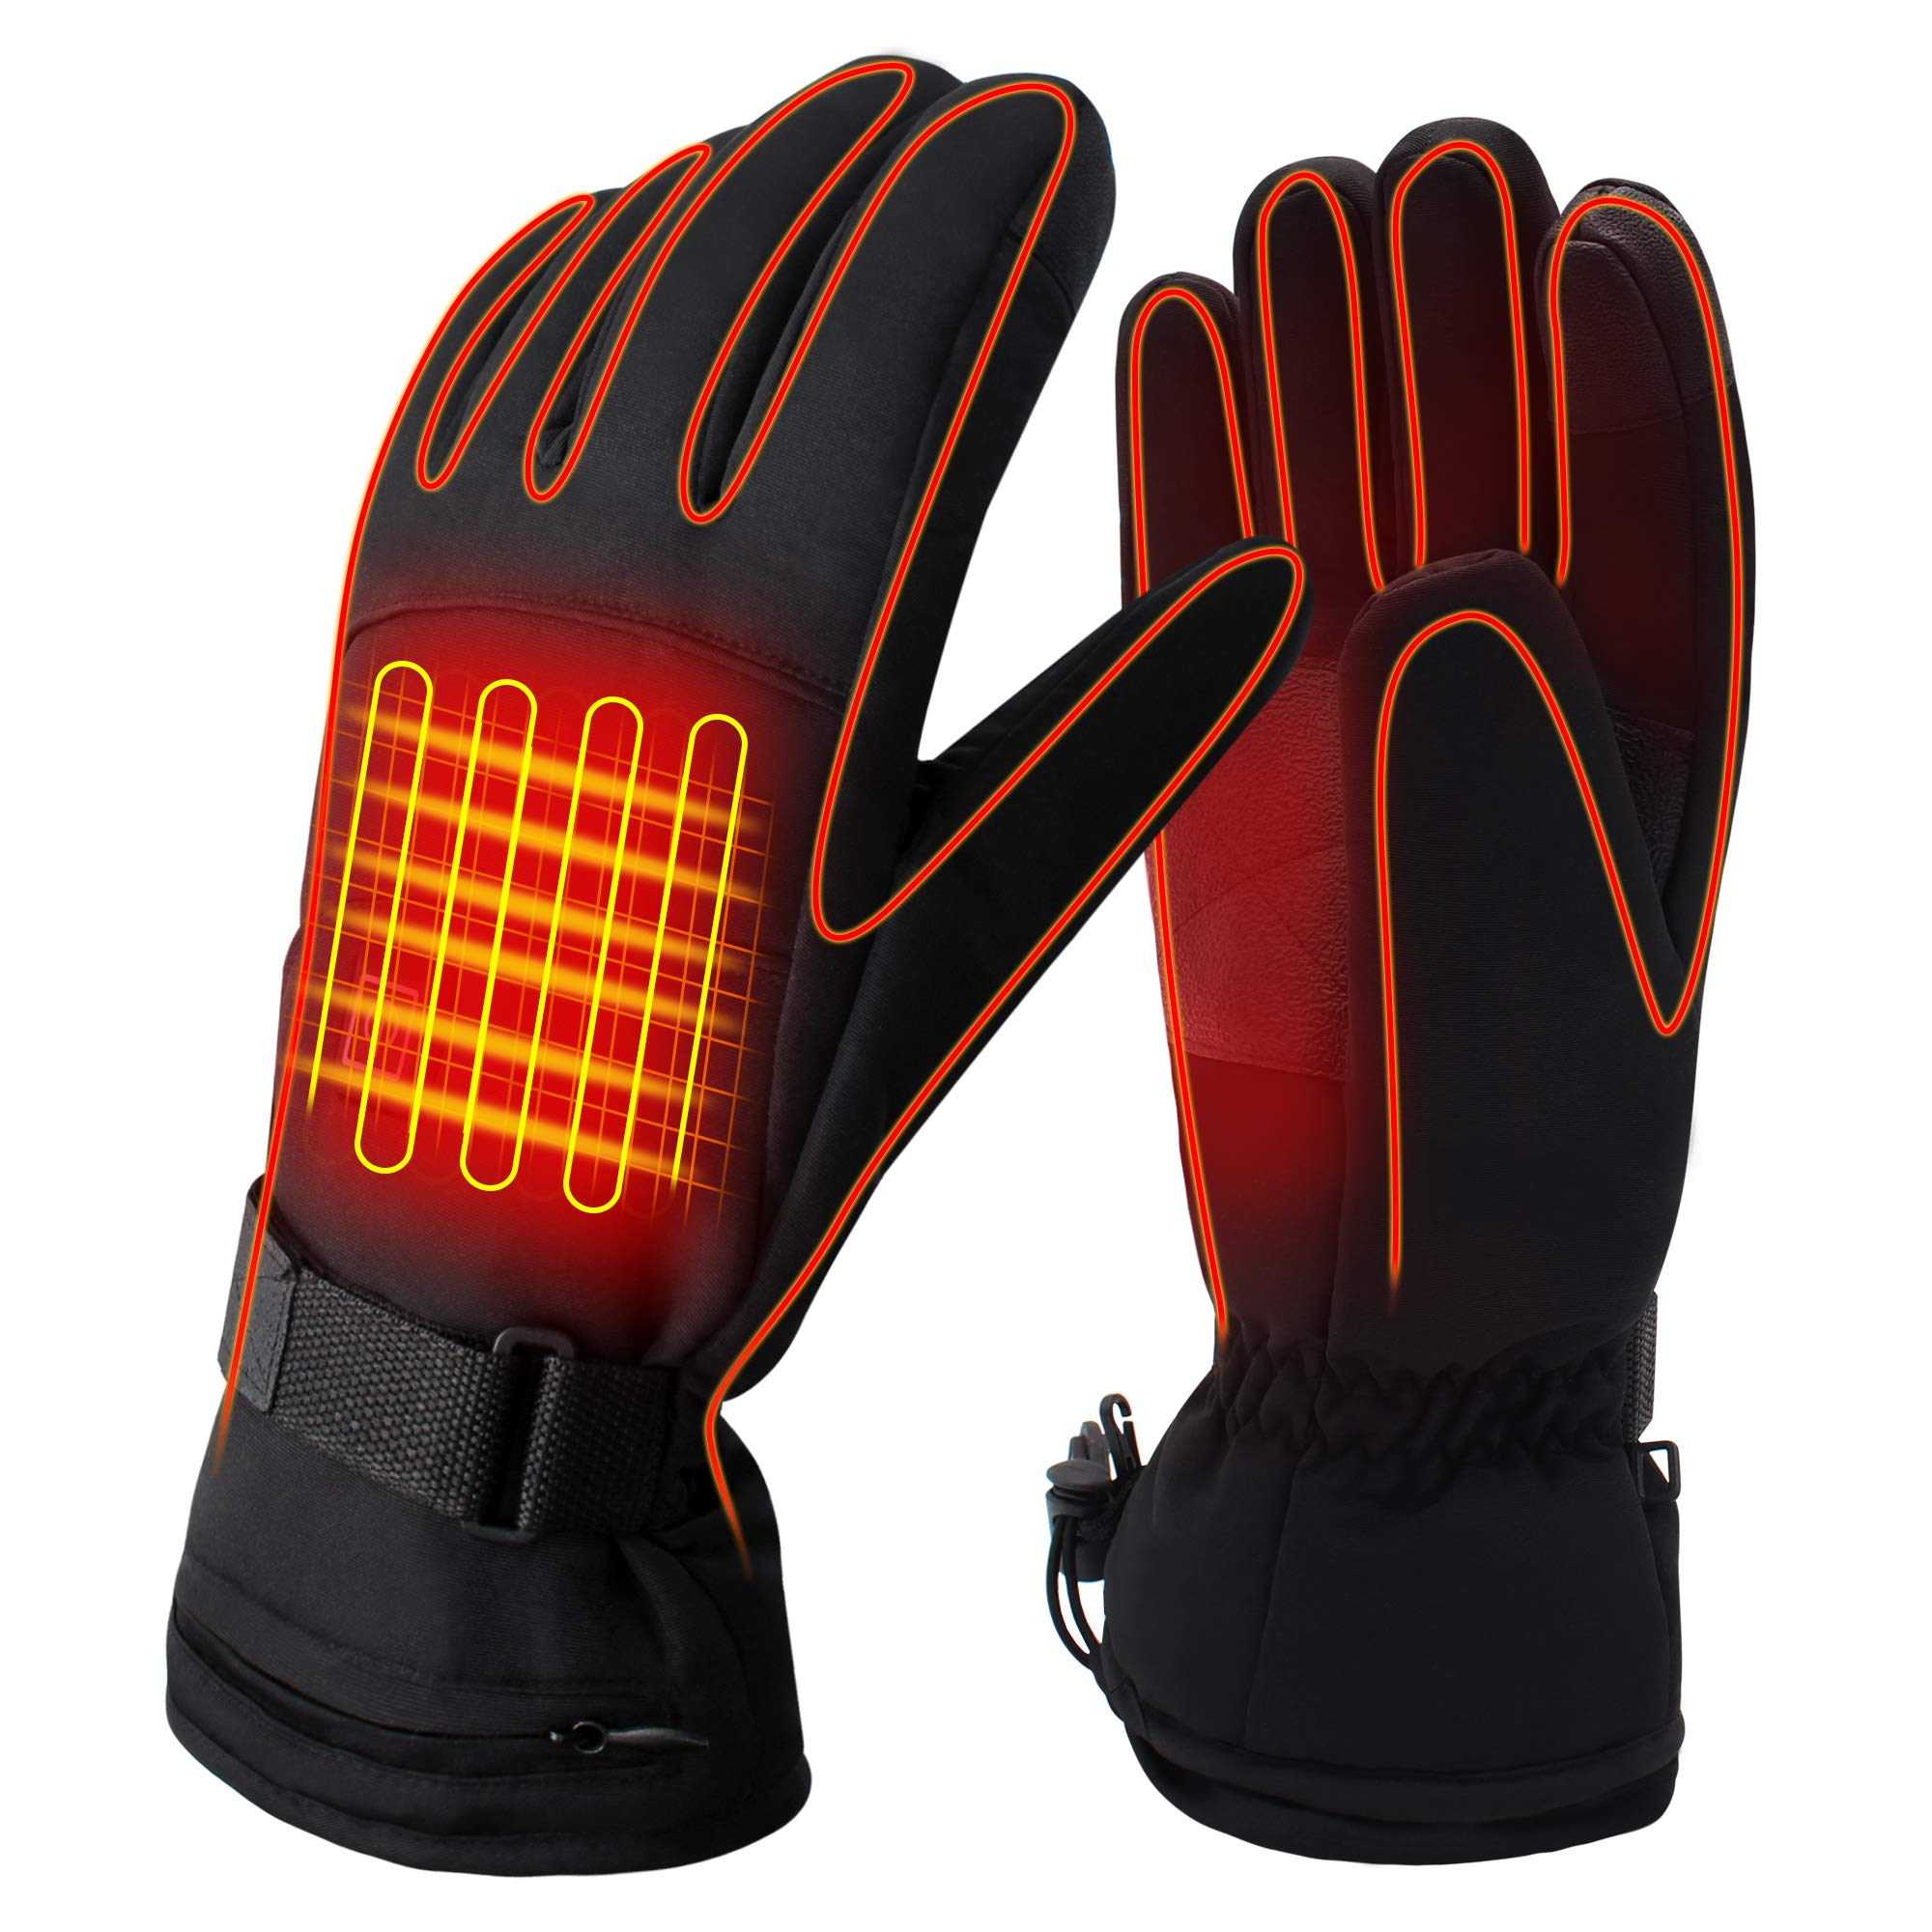 QILOVE Electric Heated Gloves,Hand Warmer with Rechargeable Batteries,Winter Extra Warm Heat Touchscreen Gloves Kit,Hiking Motorcycling Skiing Cold Weather Must-Have Men Women Heating Gloves by QILOVE